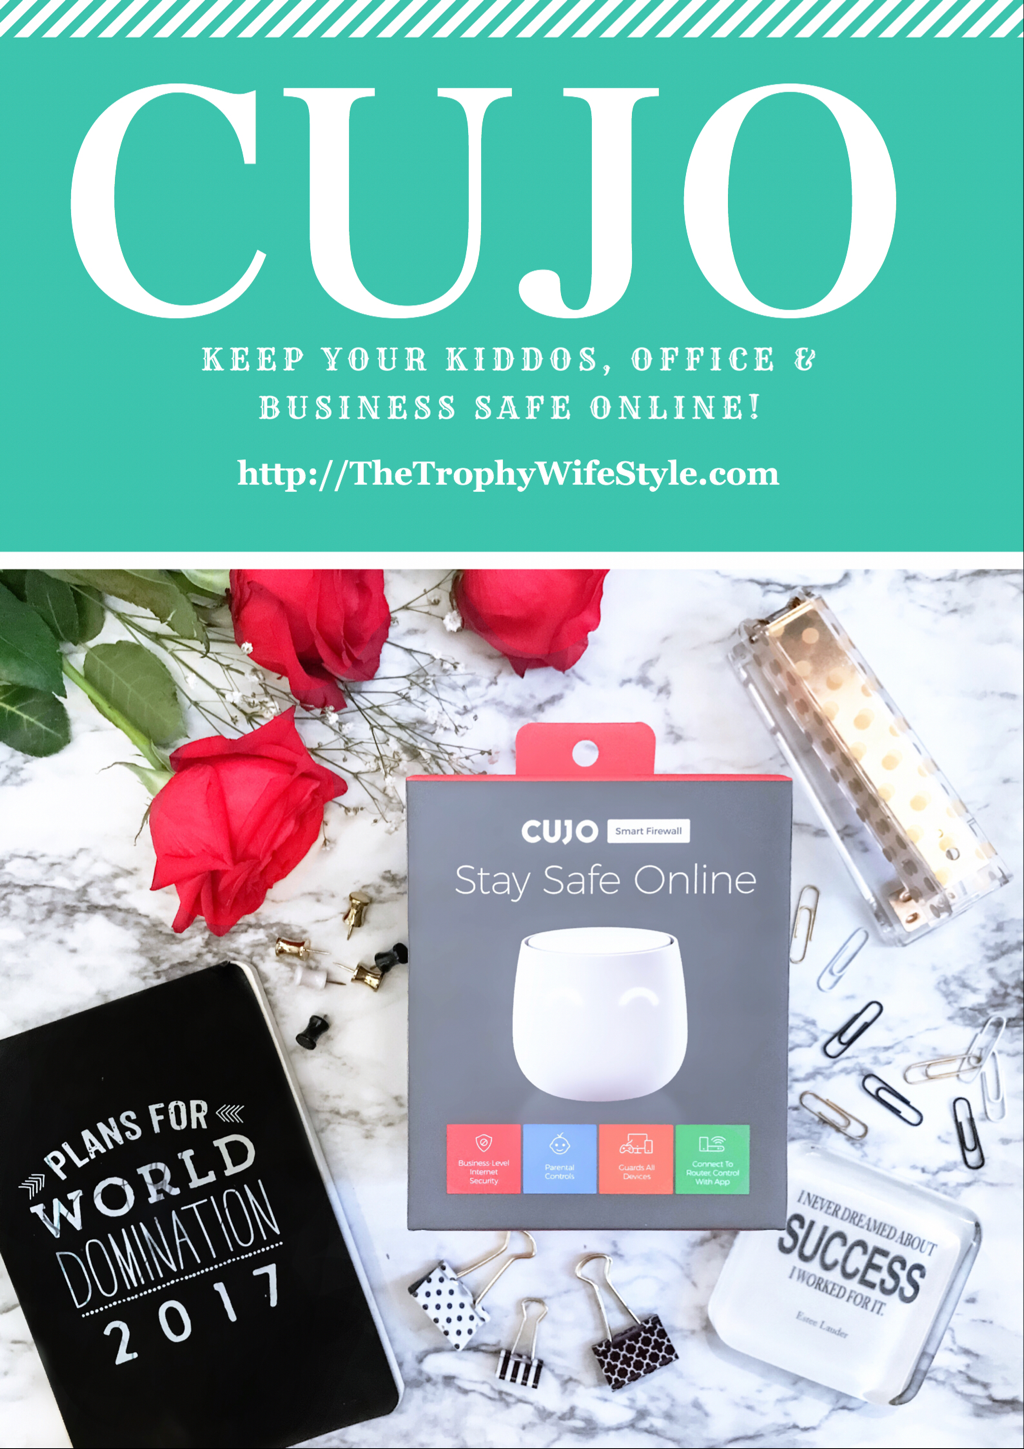 CUJO ~ Keep Your Kiddos, Office & Business Safe Online